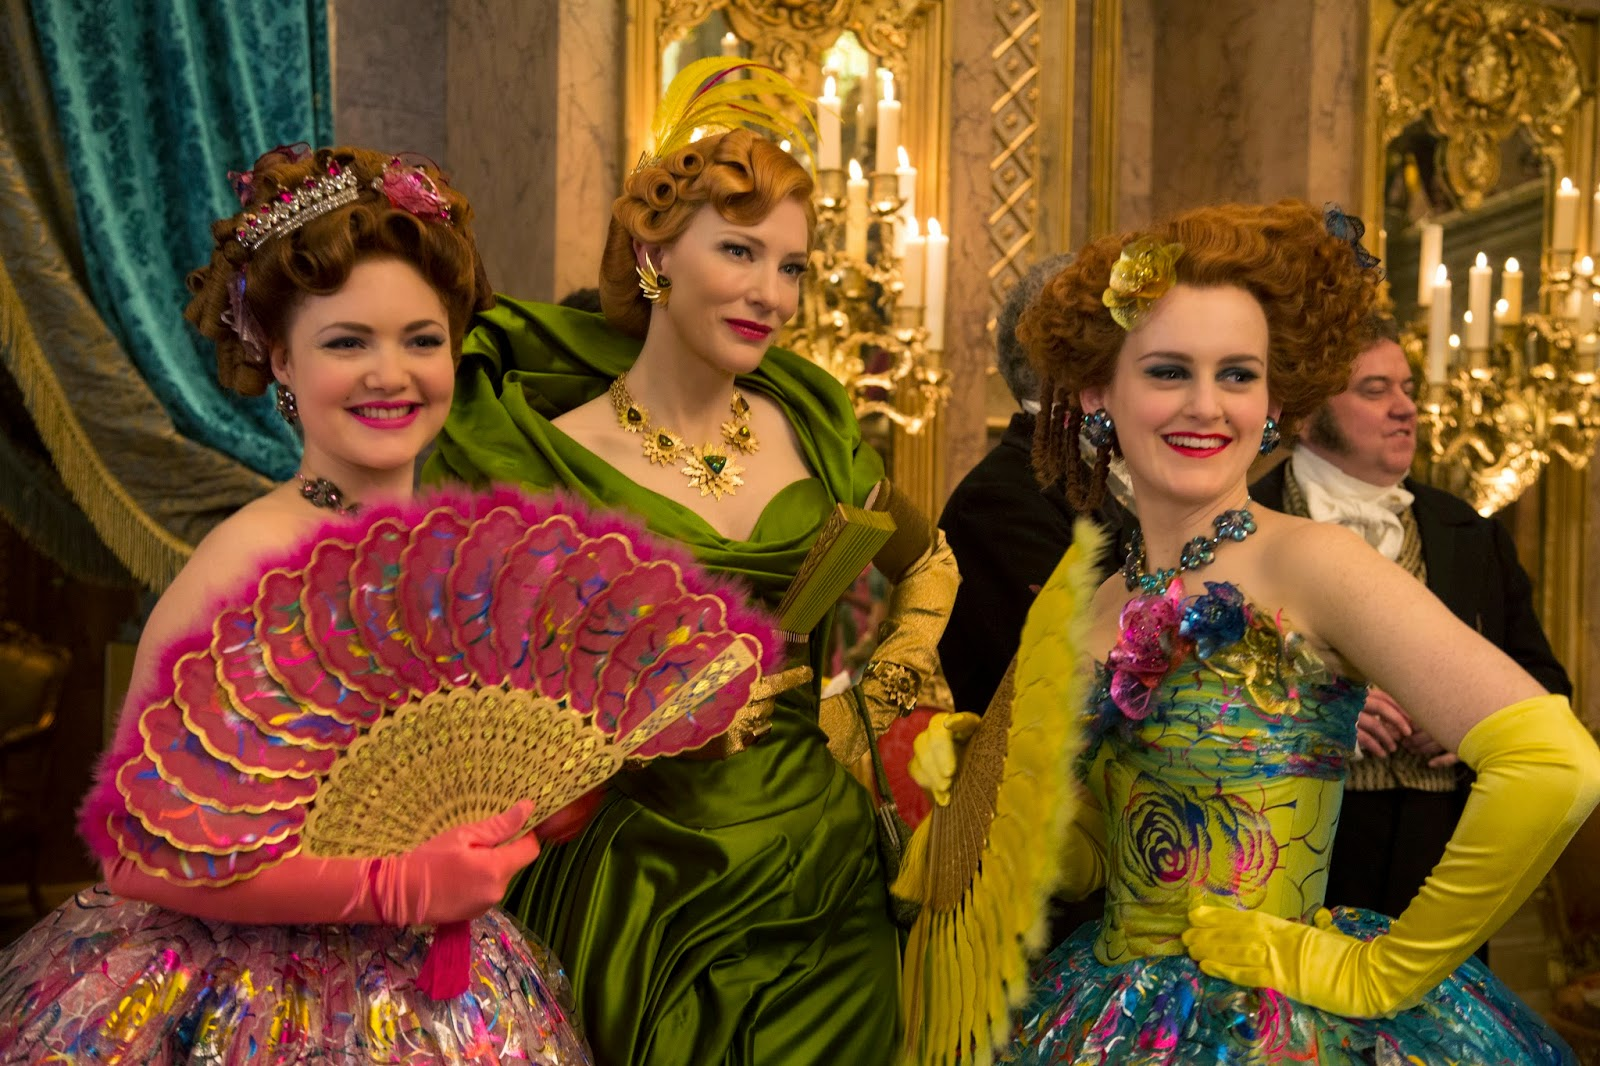 Cate Blanchett as the Stepmother, Holliday Grainger as Anastasia, Sophie McShera as Drisella in Disney's Cinderella